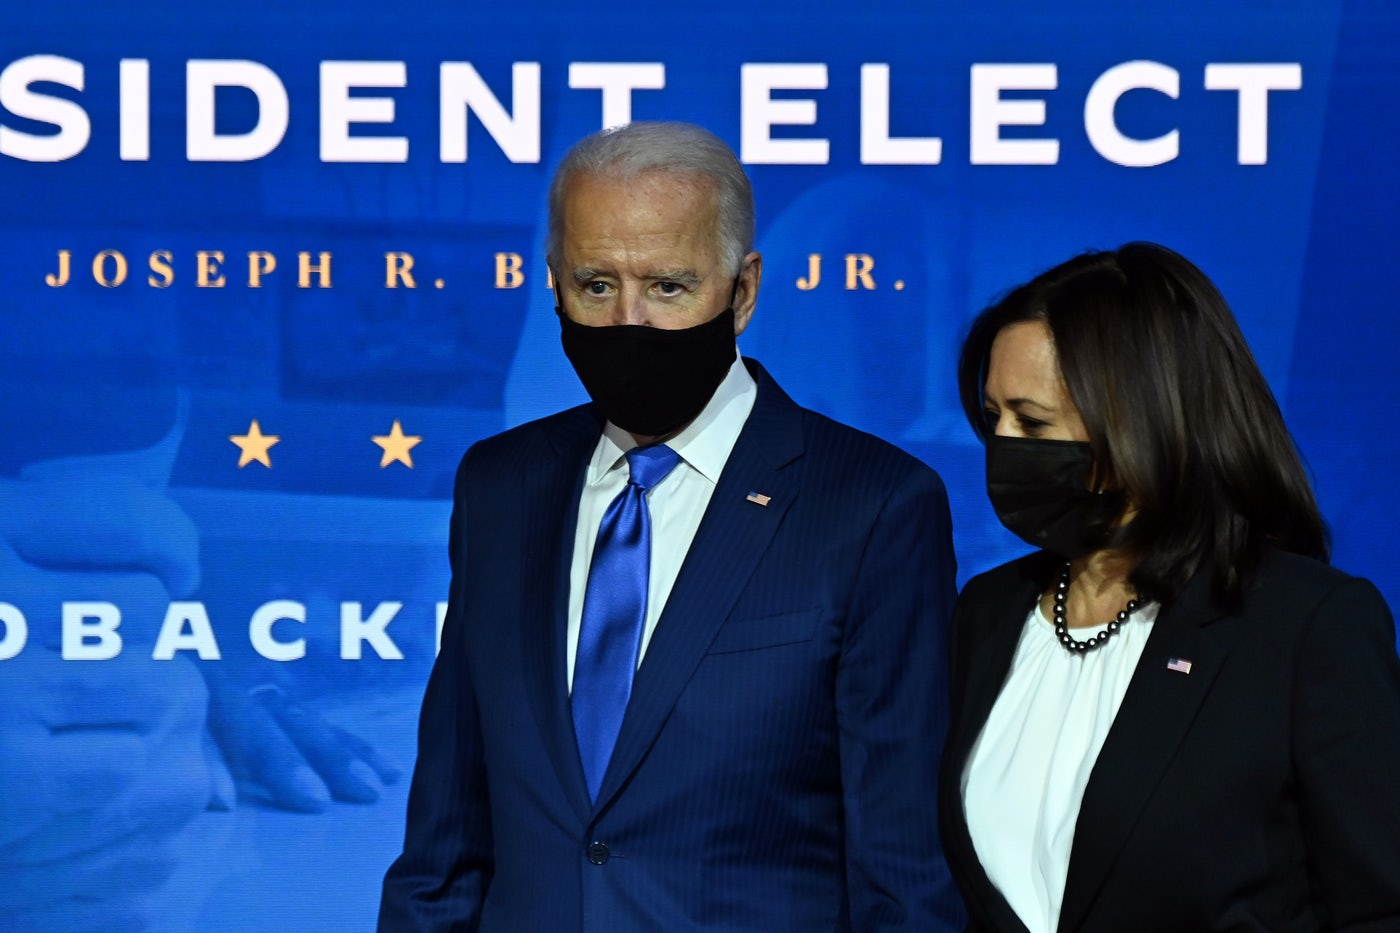 Joe Biden and Kamala Harris announce the new administration's economic team in Delaware.